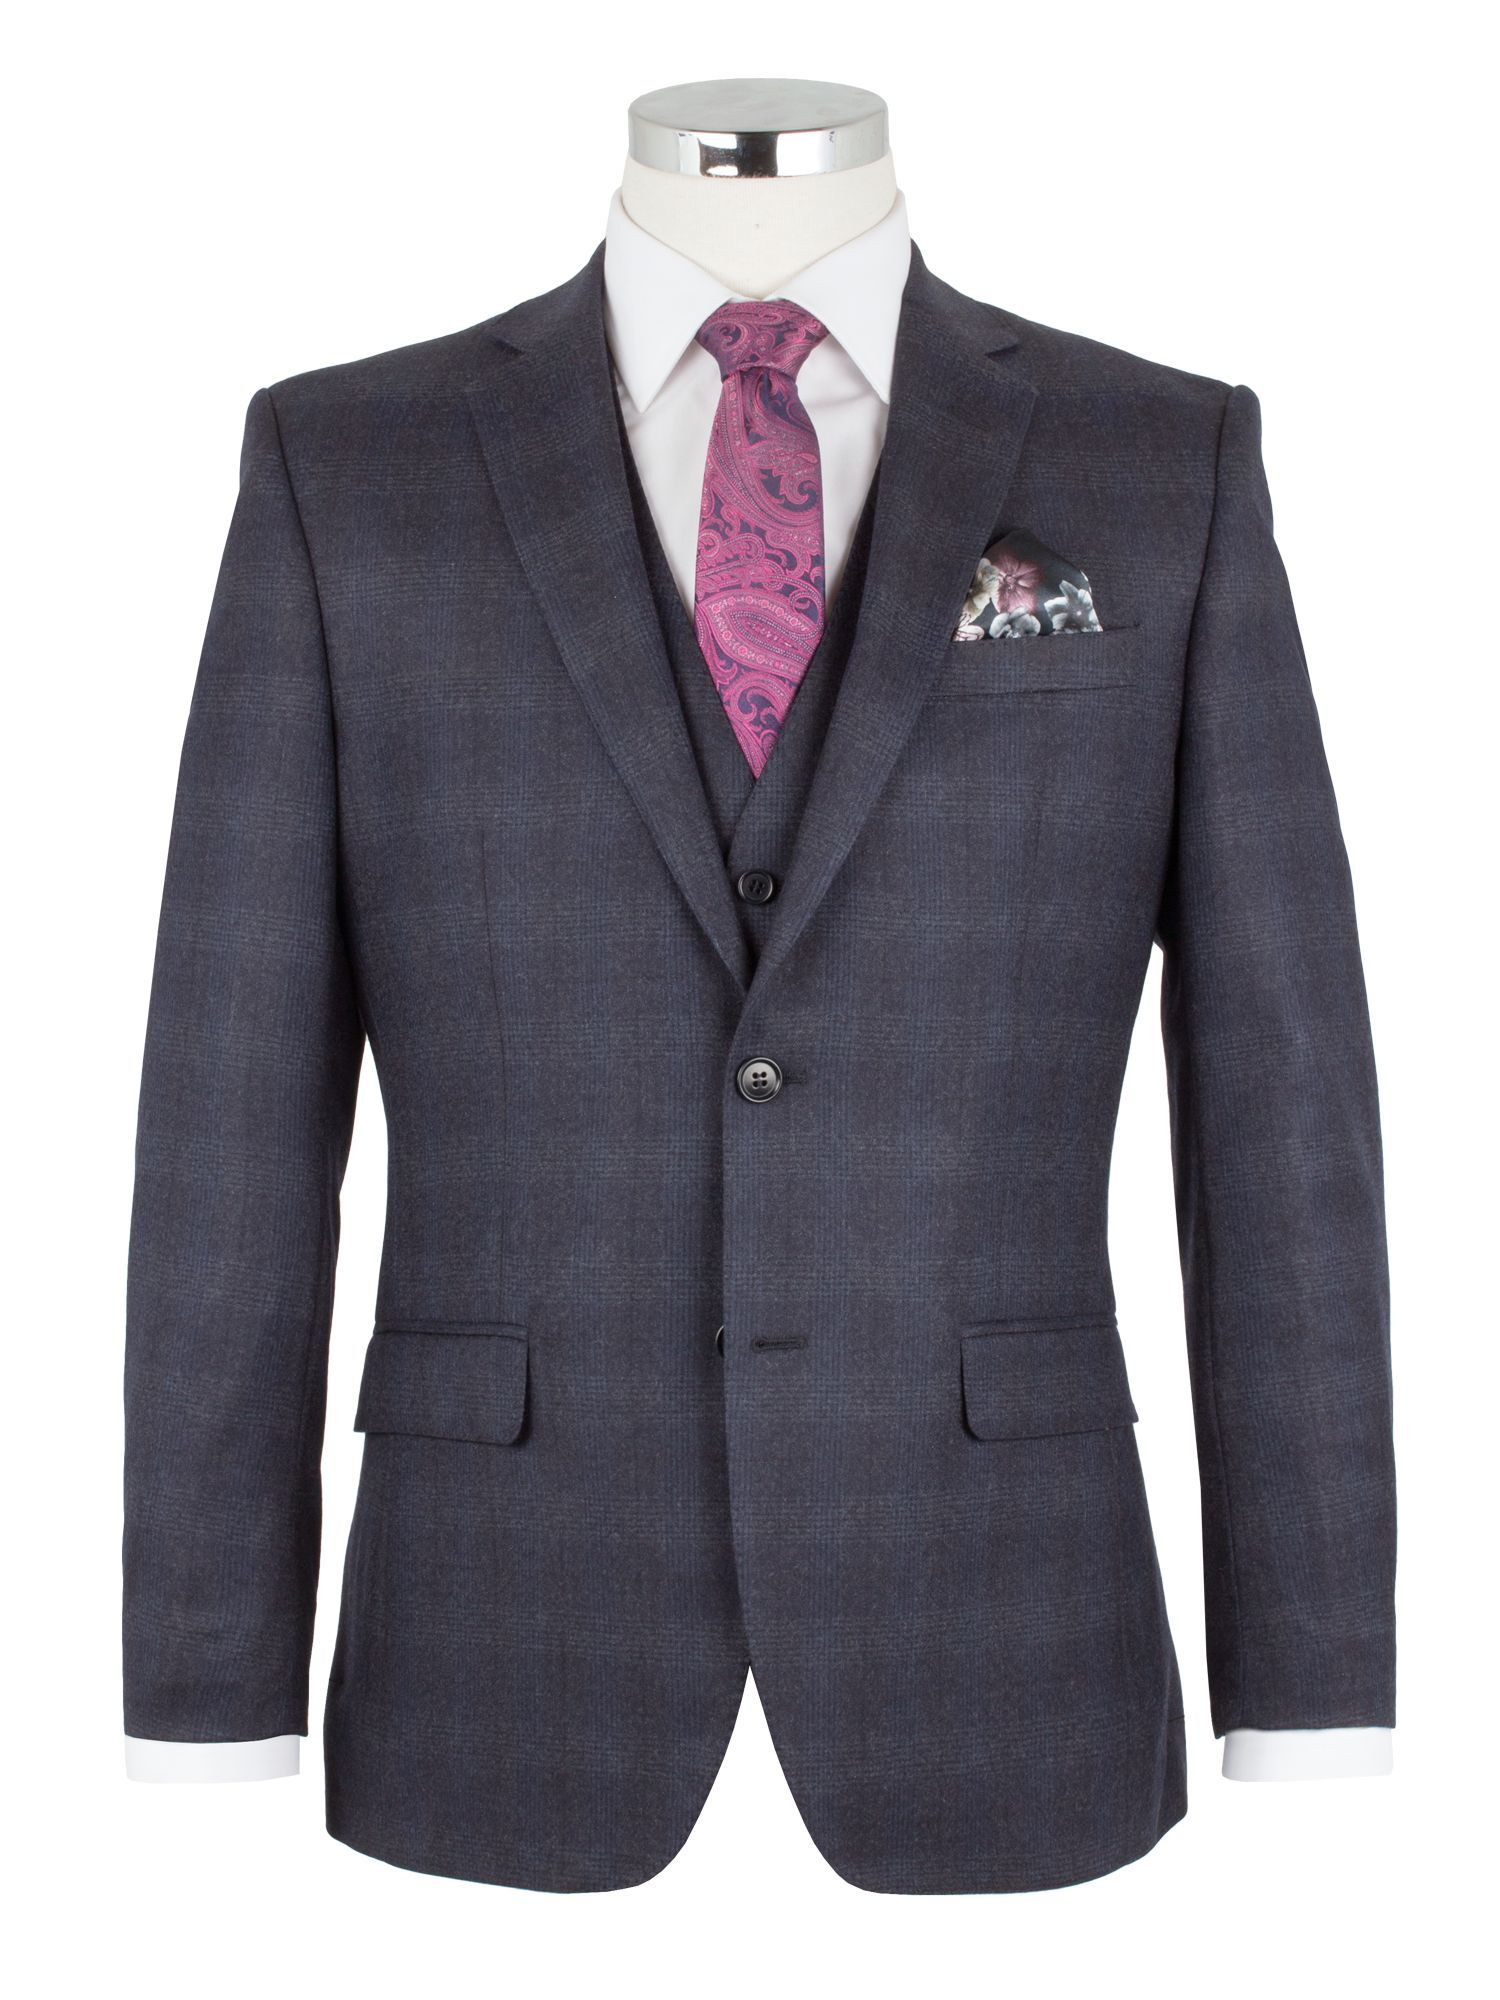 Buy: Men's Alexandre of England Avondale Suit Jacket, Blue for just: £206.50 House of Fraser Currently Offers: Men's Alexandre of England Avondale Suit Jacket, Blue from Store Category: Men > Suits & Tailoring > Suit Jackets for just: GBP206.50